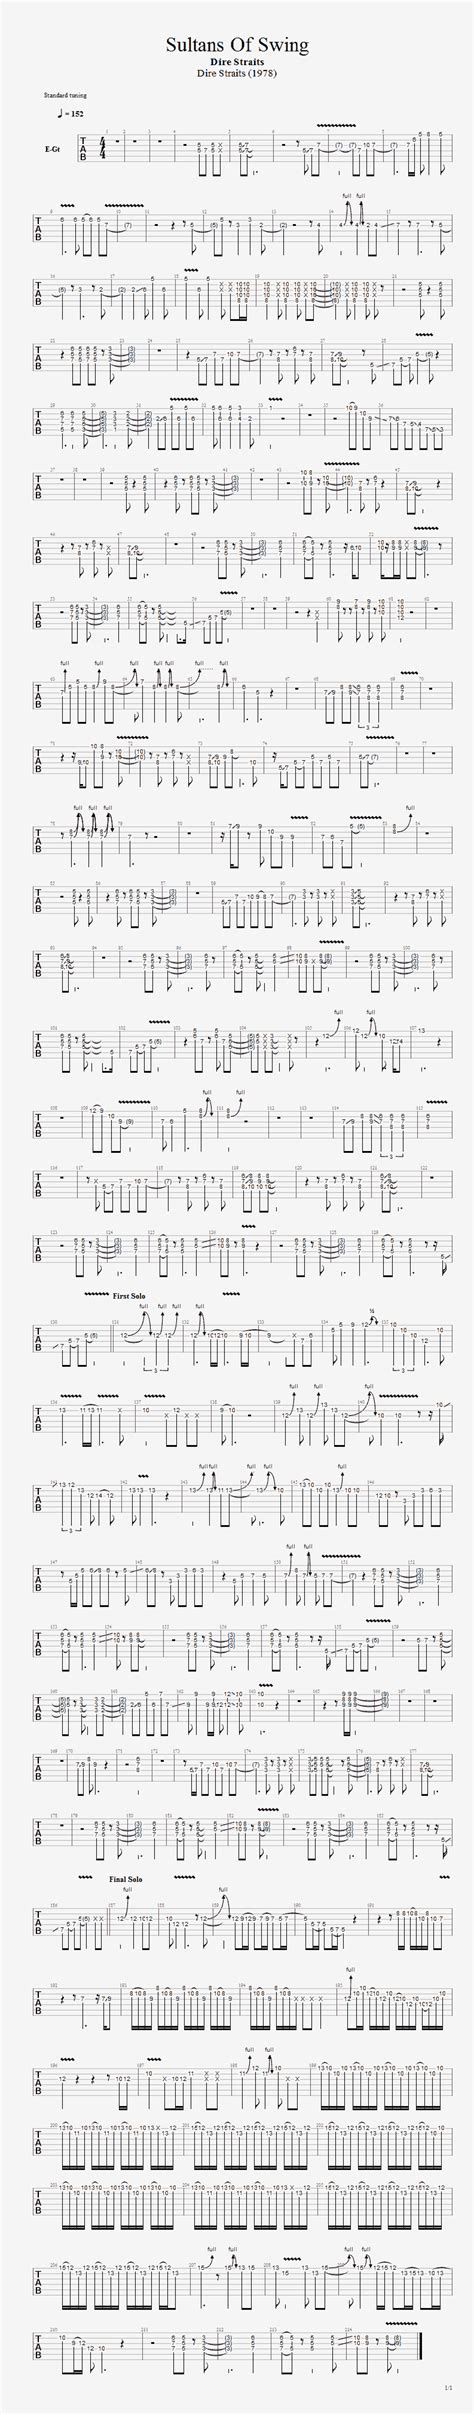 the sultans of swing sultans of swing guitar tab guitarnick